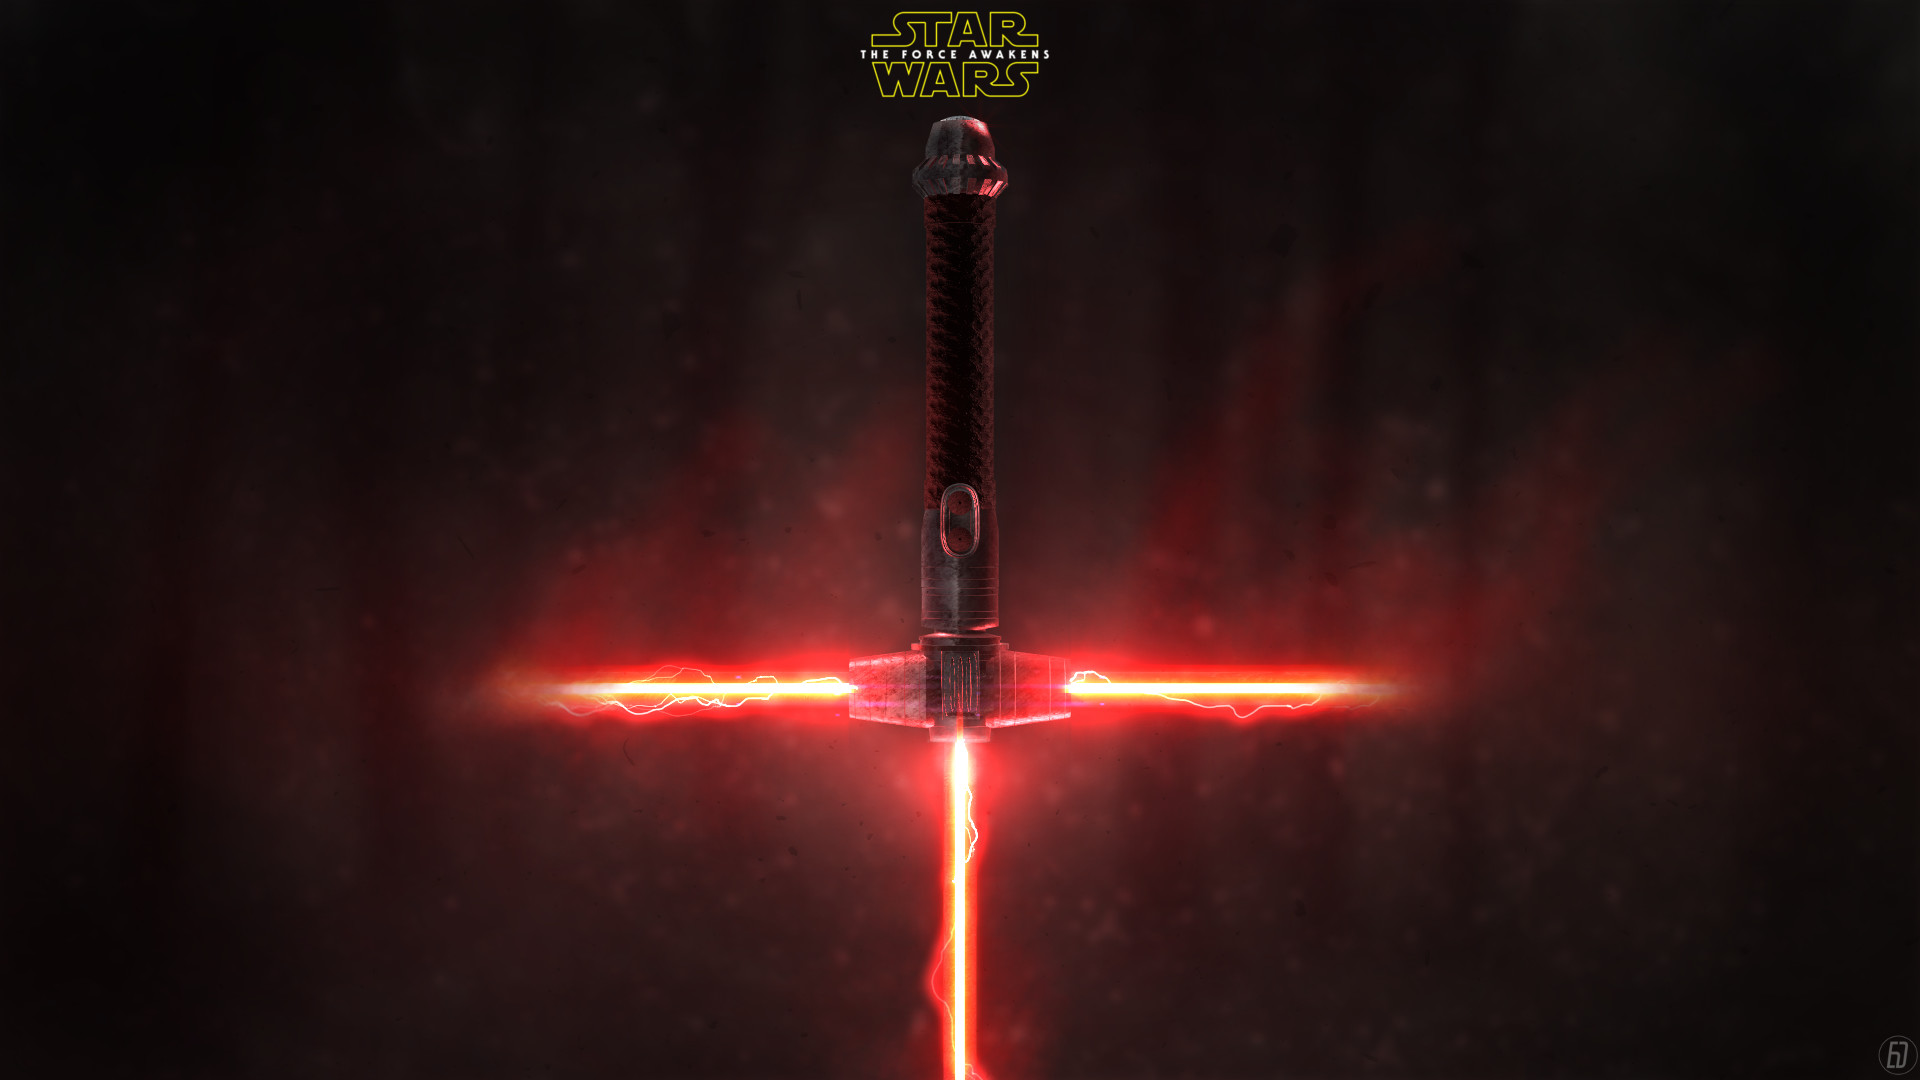 1920x1080 ... Star Wars: The Force Awakens New Lightsaber by spiritdsgn